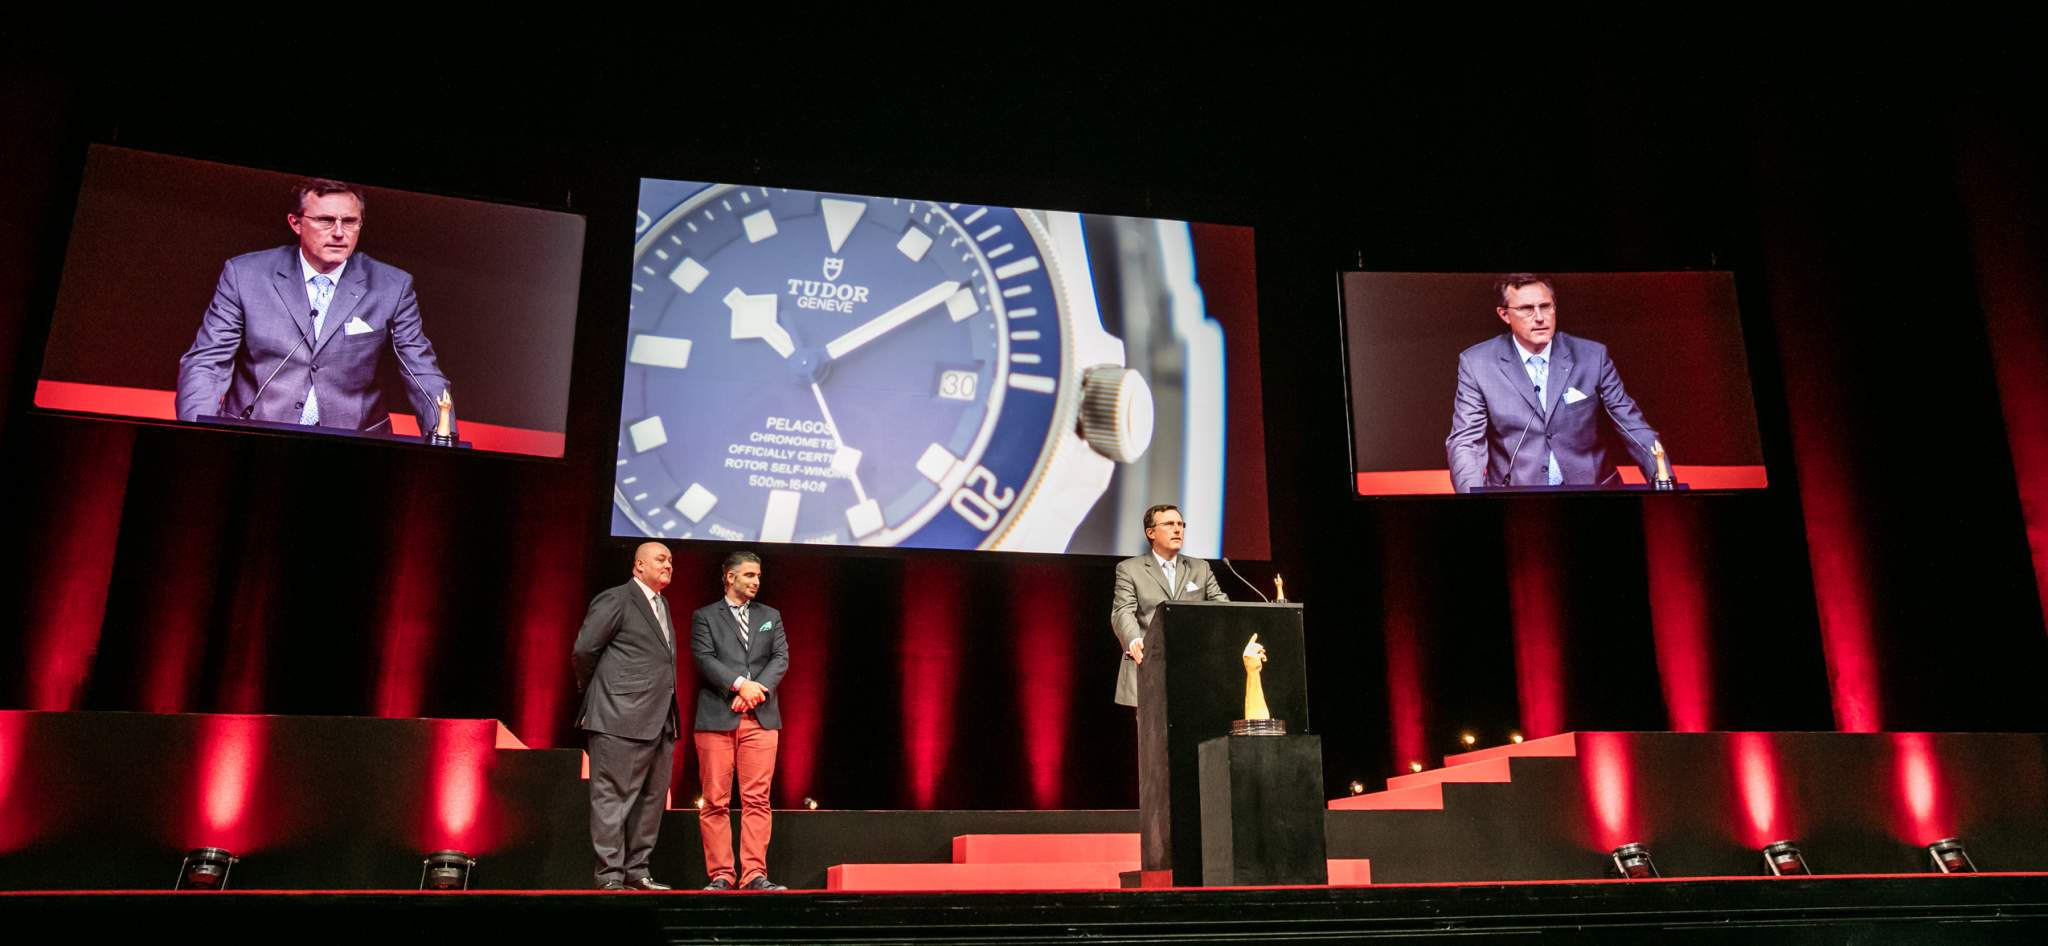 Philippe Peverelli (CEO of Tudor, winner of the Sport Watch Prize 2015) with William Rohr and David Sadigh (jury members)